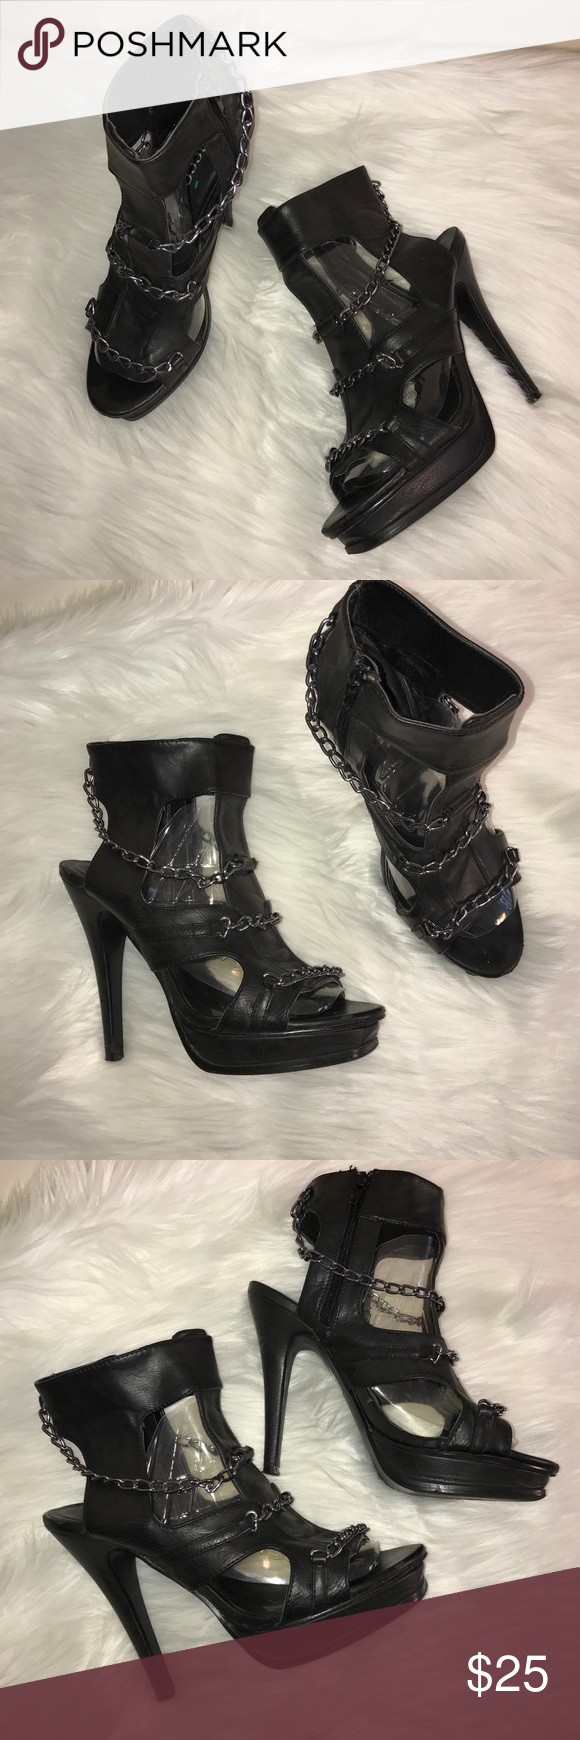 Bucco Capfnsis Sliver Chain Heel All man made materials. Made in China. In Good Condition, only worn a few times Bucco Shoes Heels